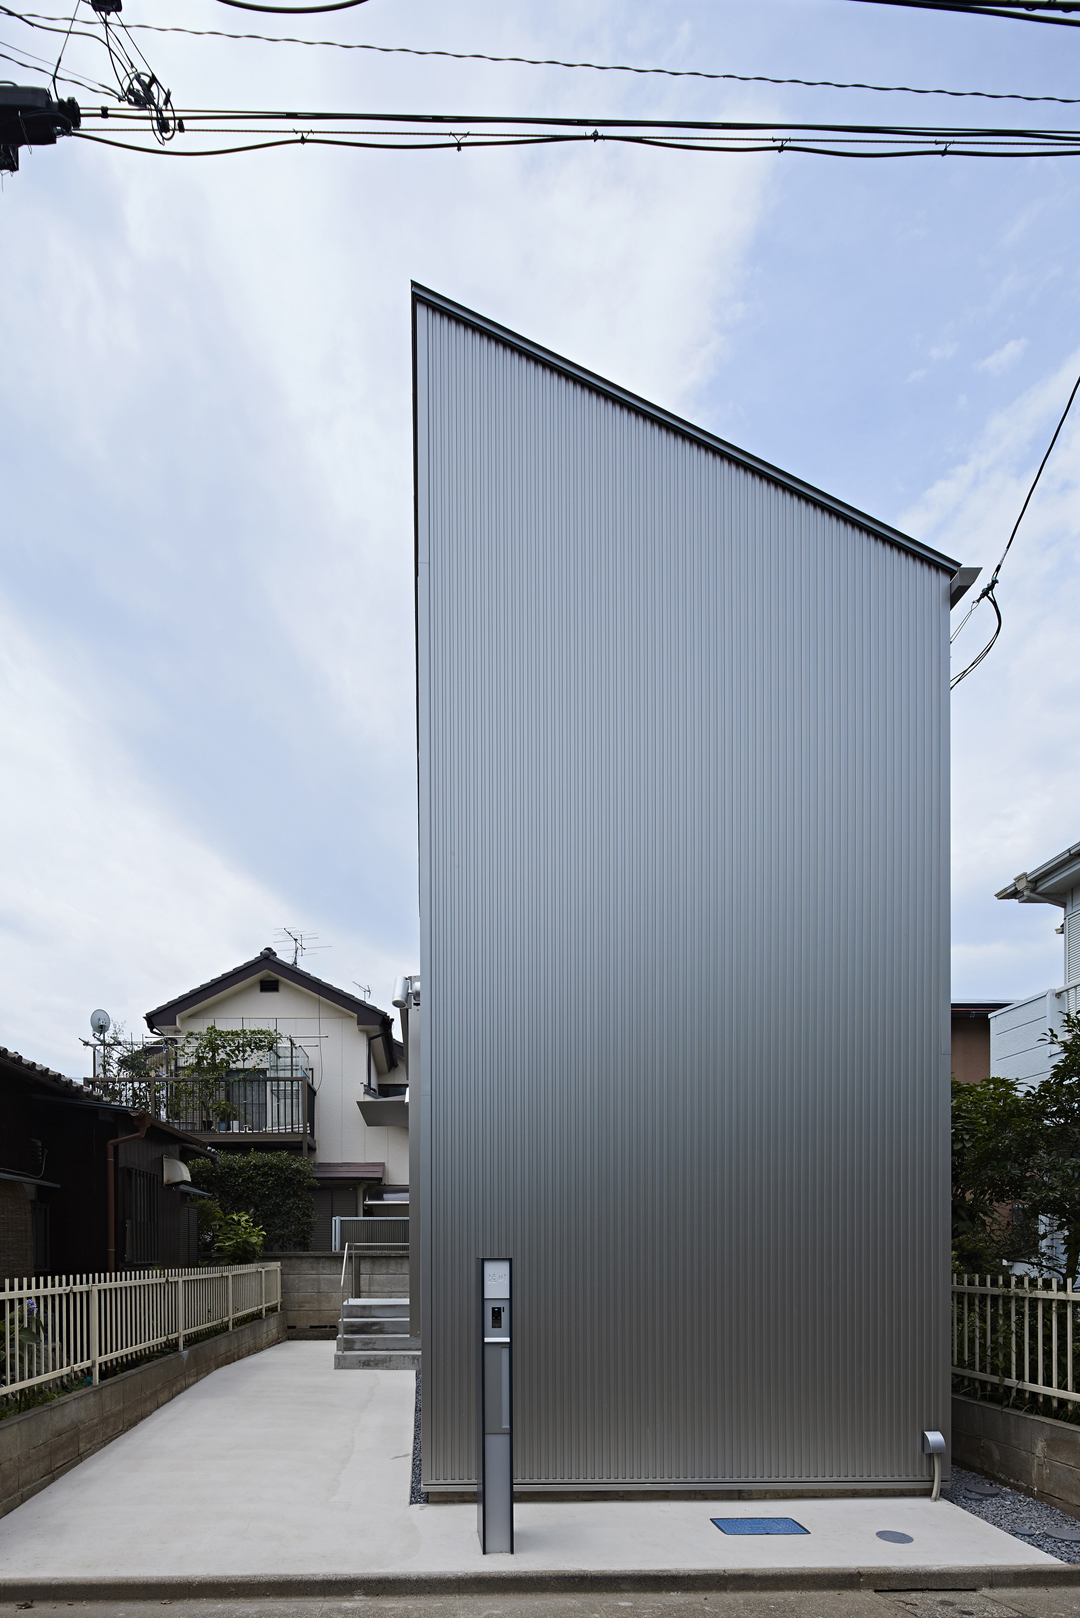 Long Window House in Tokyo, Japan, by Koichi Torimura of Another Apartment